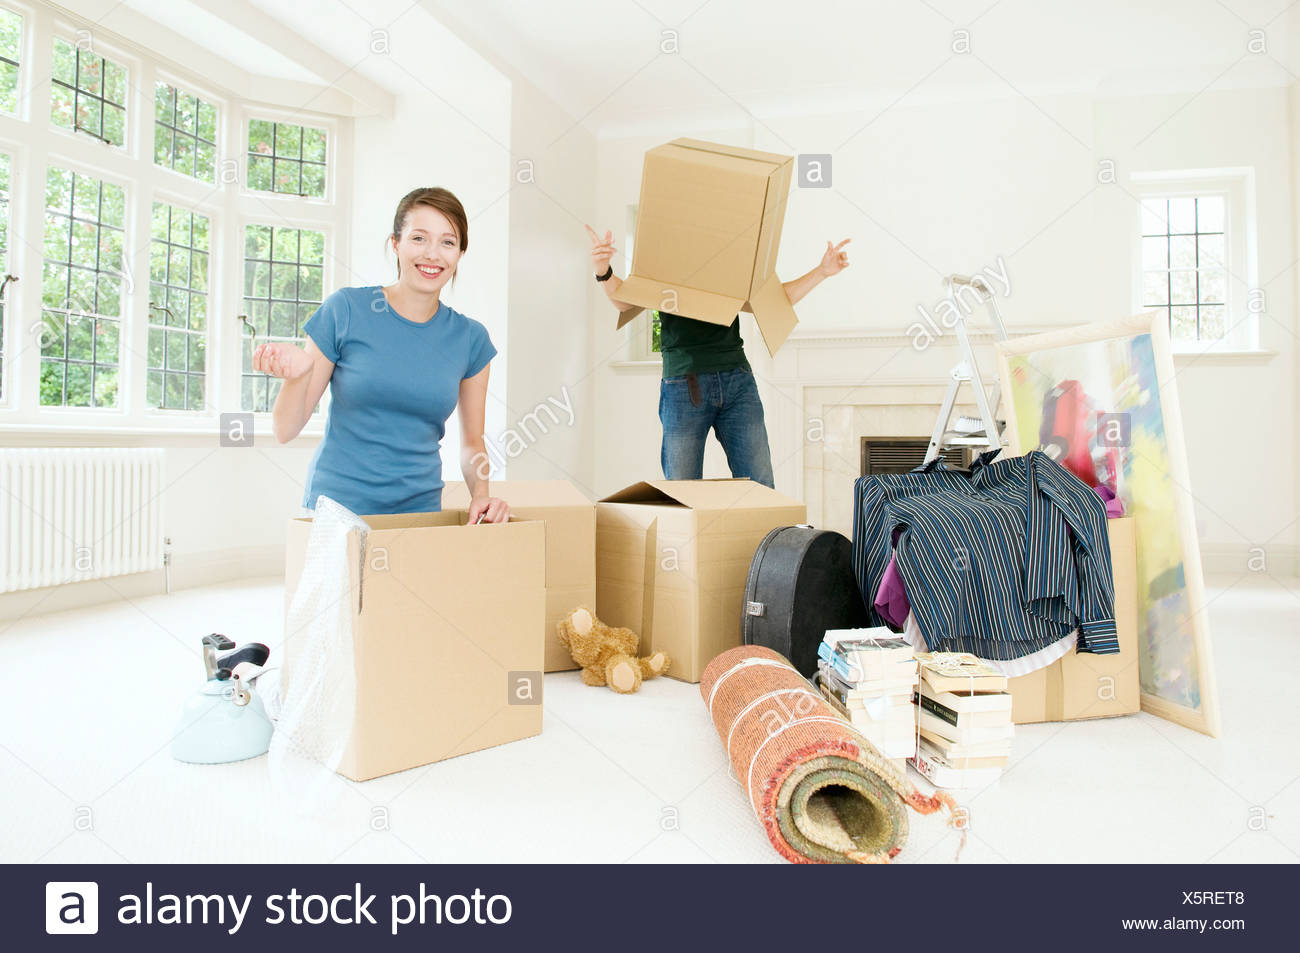 A couple having fun moving home - Stock Image